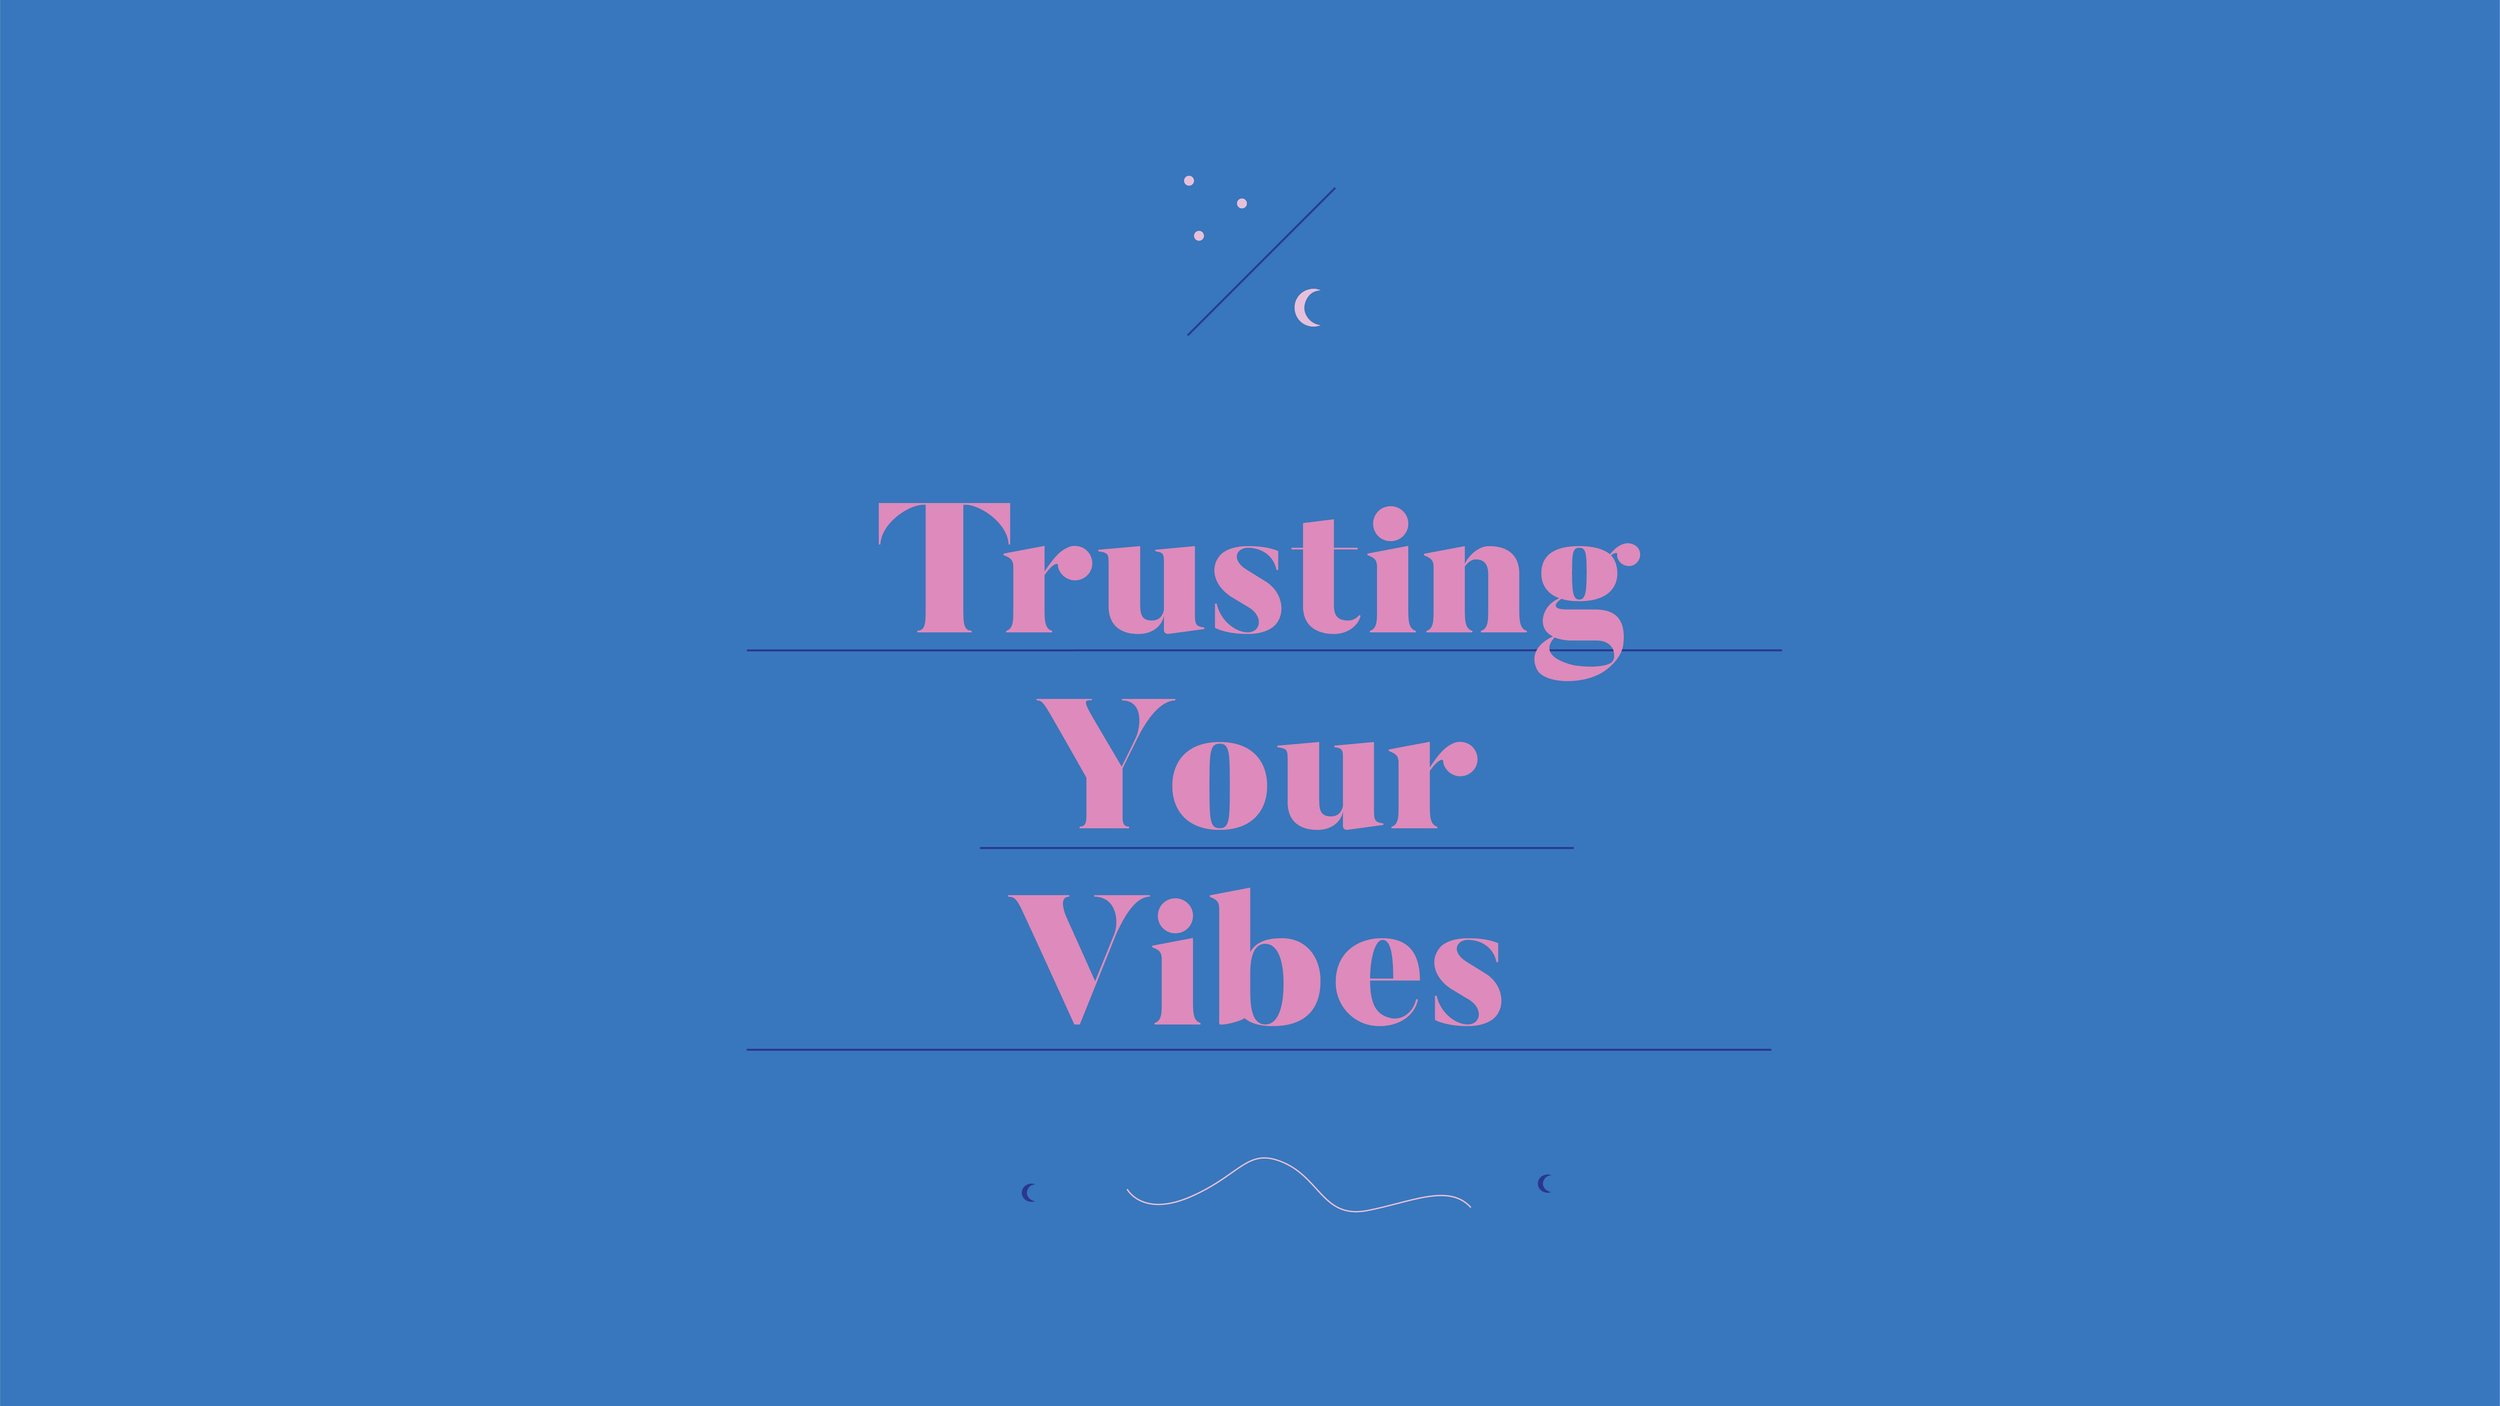 trusting-your-vibes-1.jpg